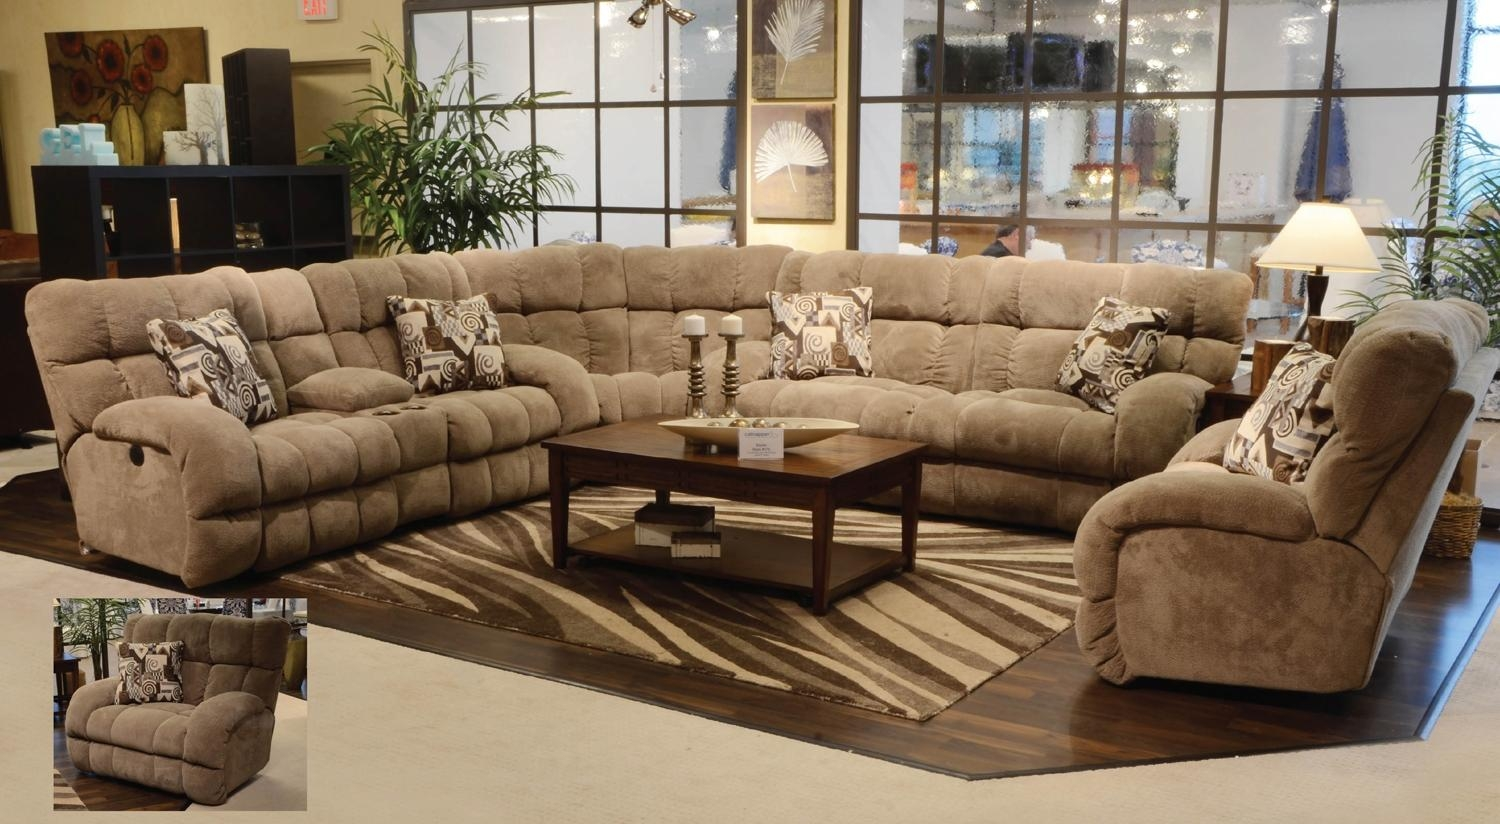 Sofas Center : Large Sectional Sofas With Chaise Extra Wilmington Throughout Sectional Sofa With Large Ottoman (View 9 of 20)